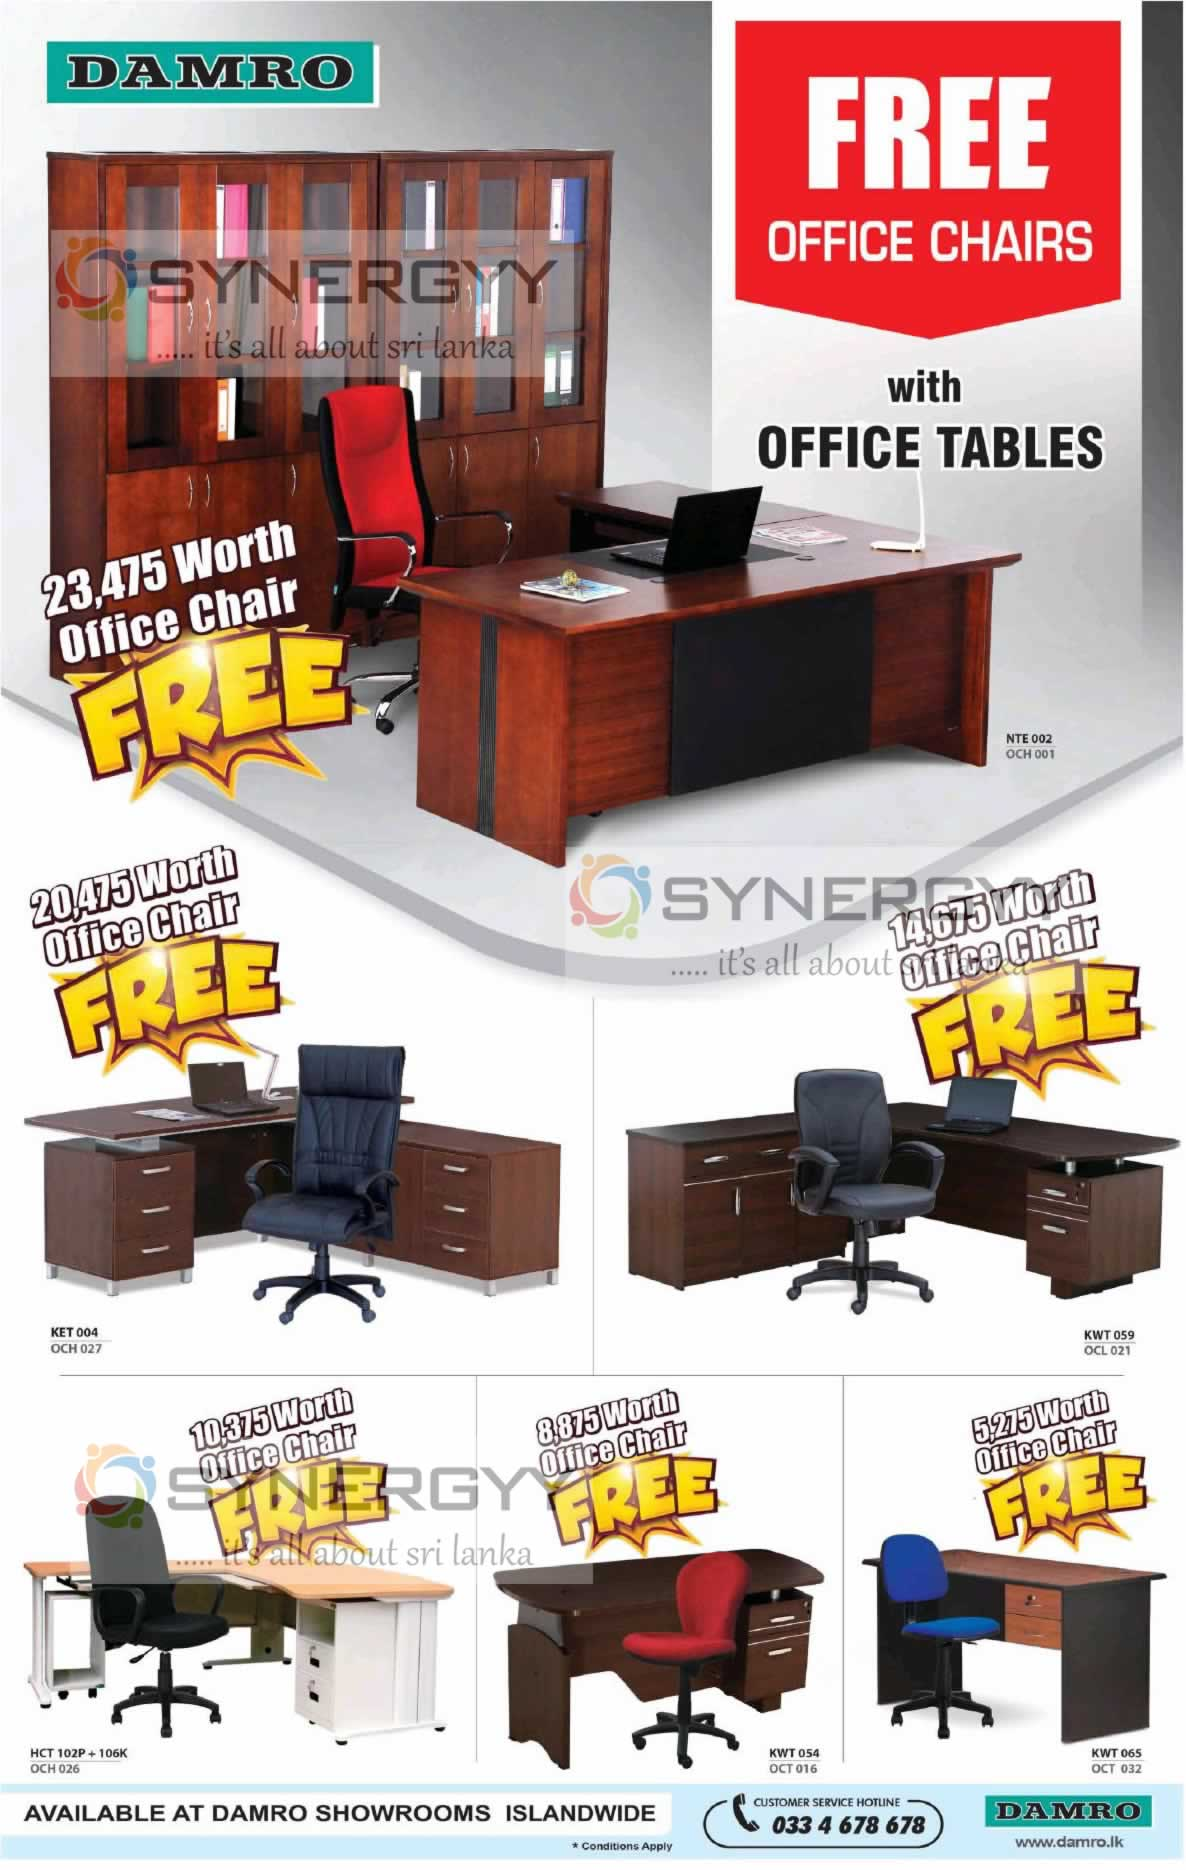 Damro Promotion Free Office Chairs For Office Tables